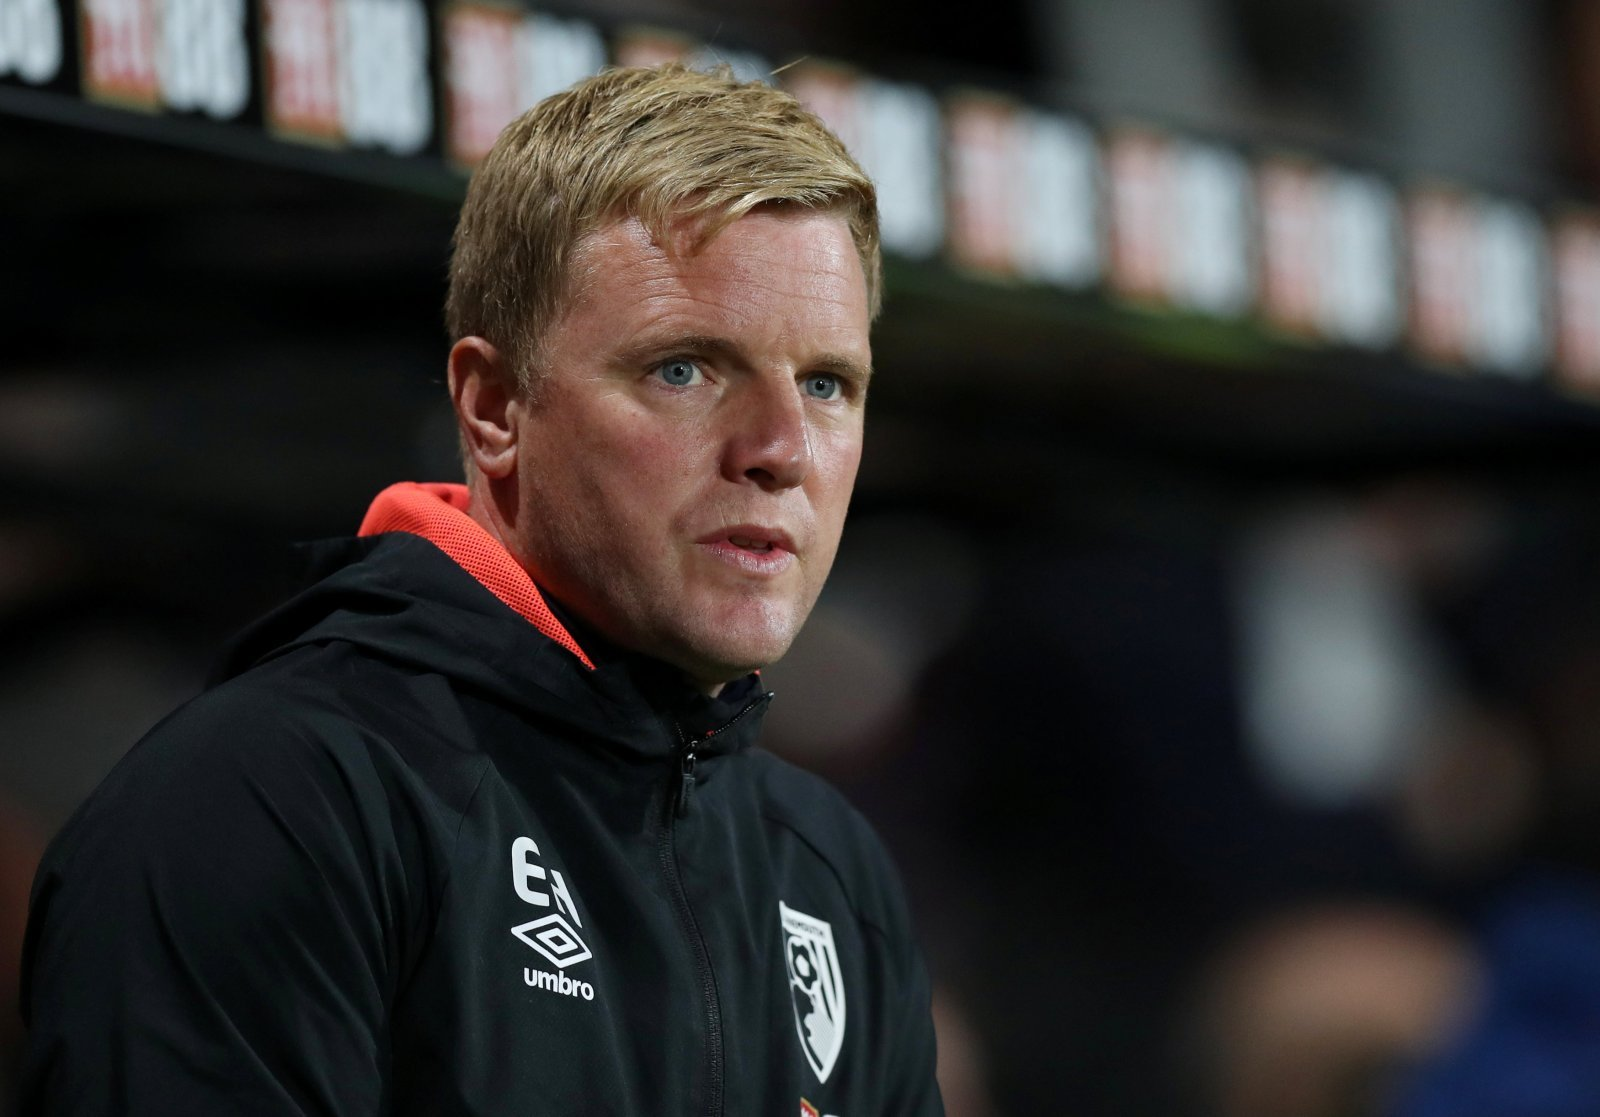 Opinion: Eddie Howe links suggest Aston Villa board have no idea what they're doing